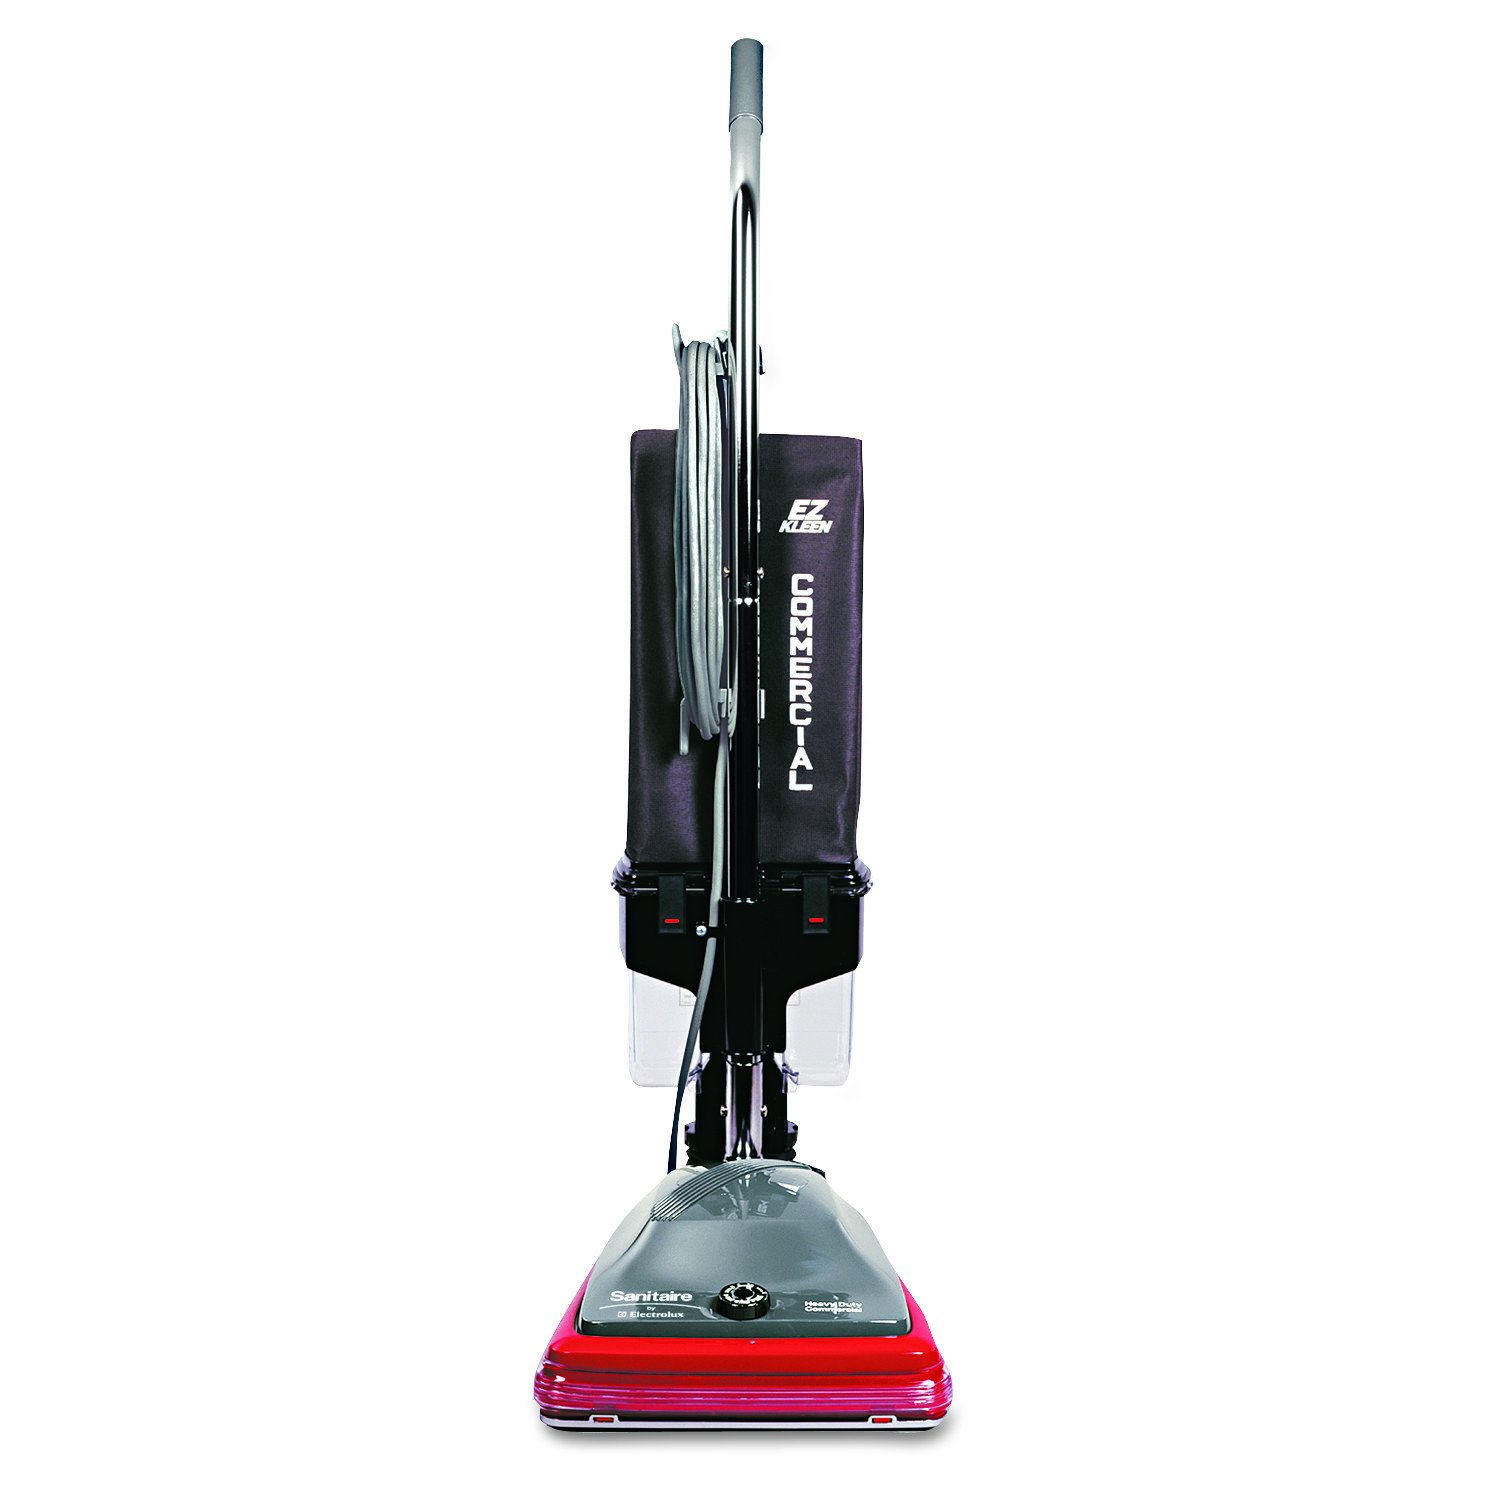 Sanitaire EUKSC689A Lightweight Uprights Commercial Vacuum, 30' Cord, 5 Amps Power, 21-1/2'' Length x 15-1/2'' Width x 9.9'' Height, Red/Black